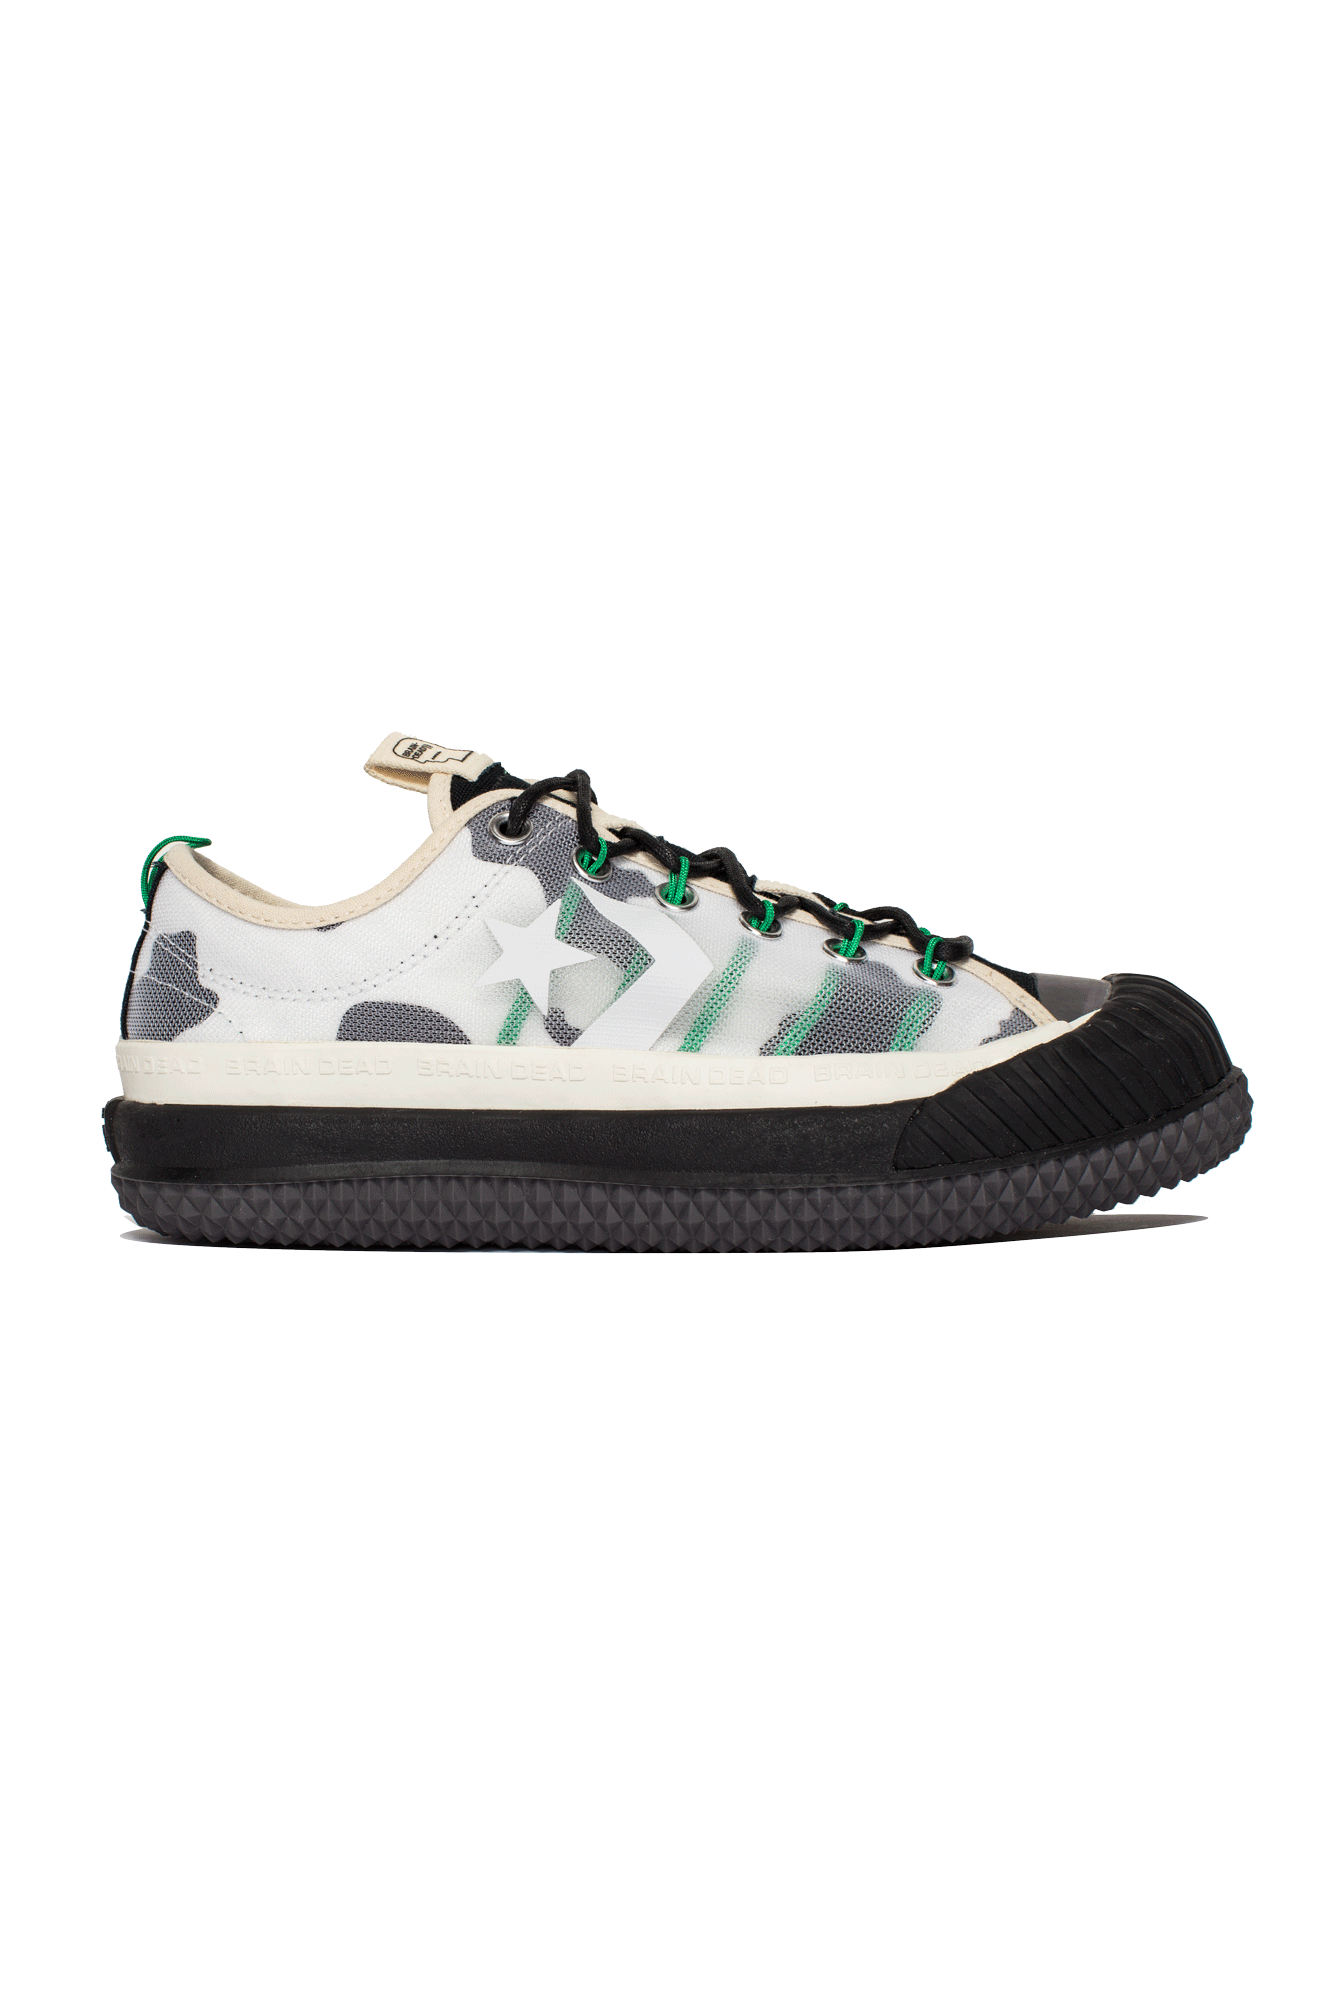 Converse Sneakers Bosey OX x Brain Dead Bianco 169947C#000#NTIVRY#5 - One Block Down